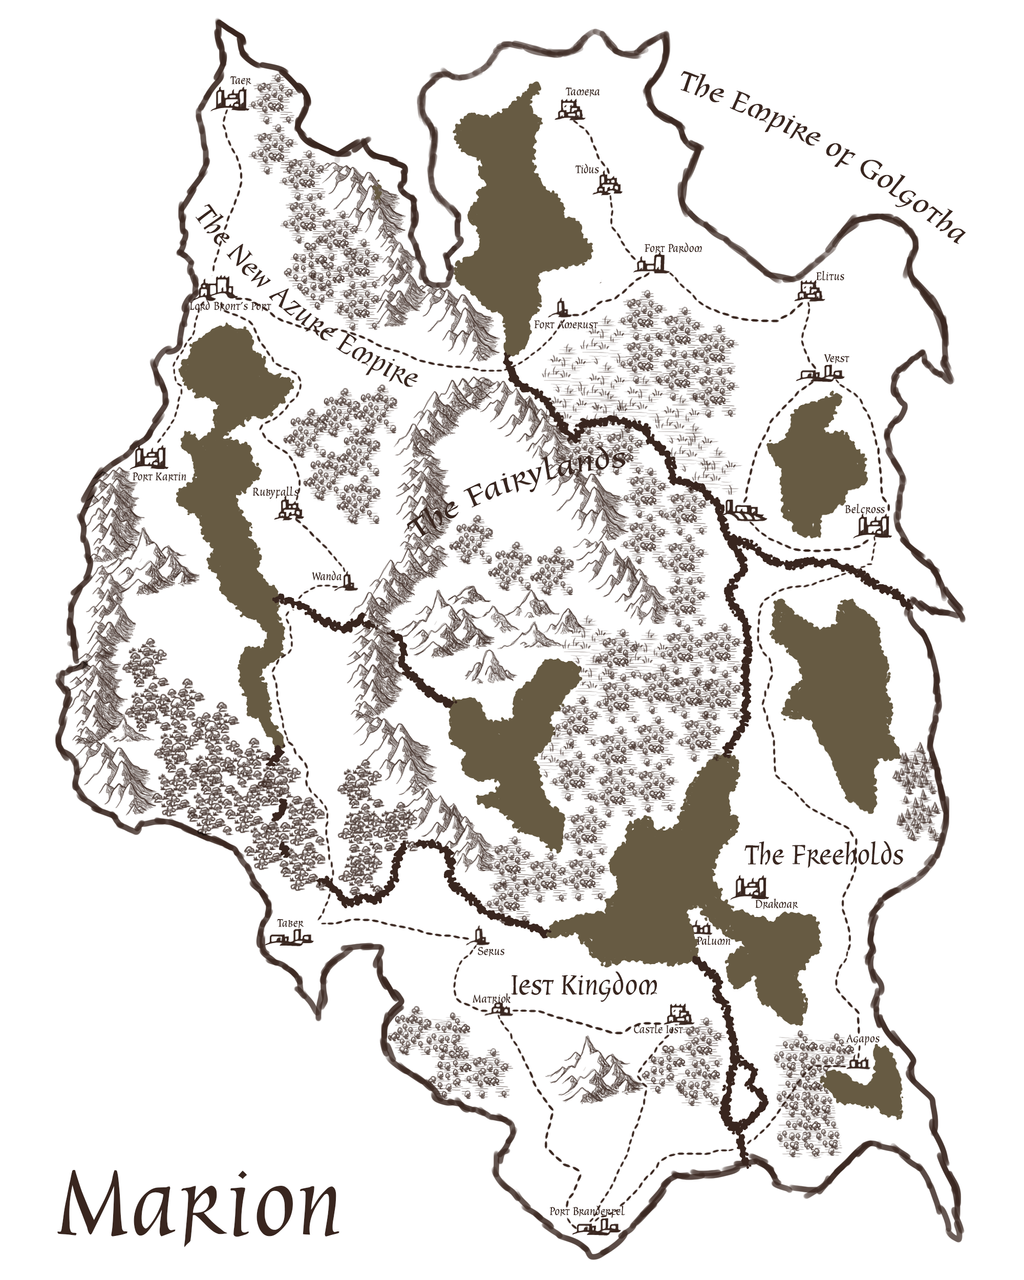 Map Of Marion by JayceRan